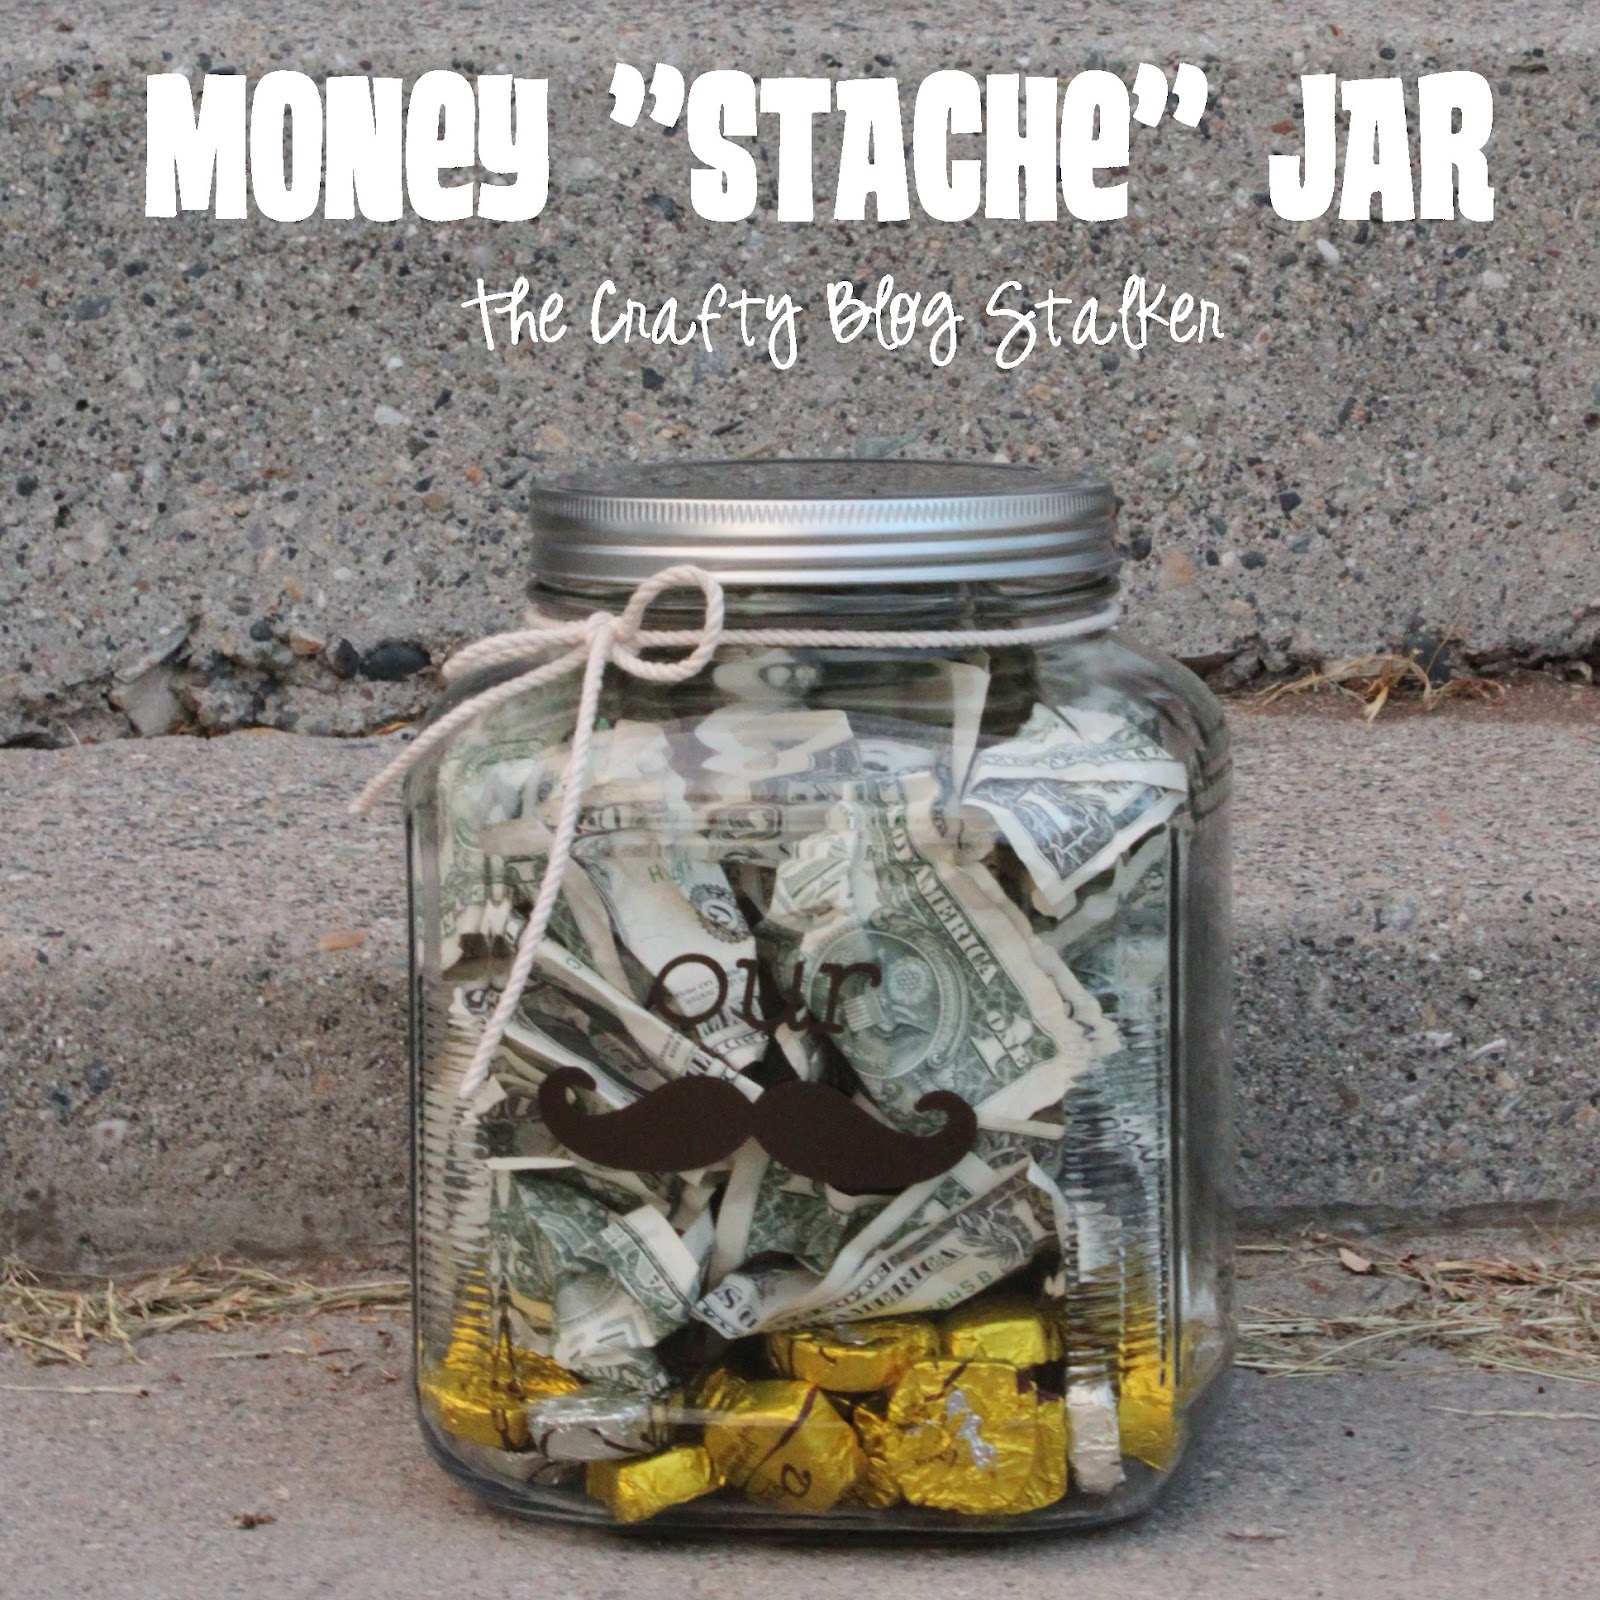 Money Stache Jar Wedding Gift The Crafty Blog Stalker